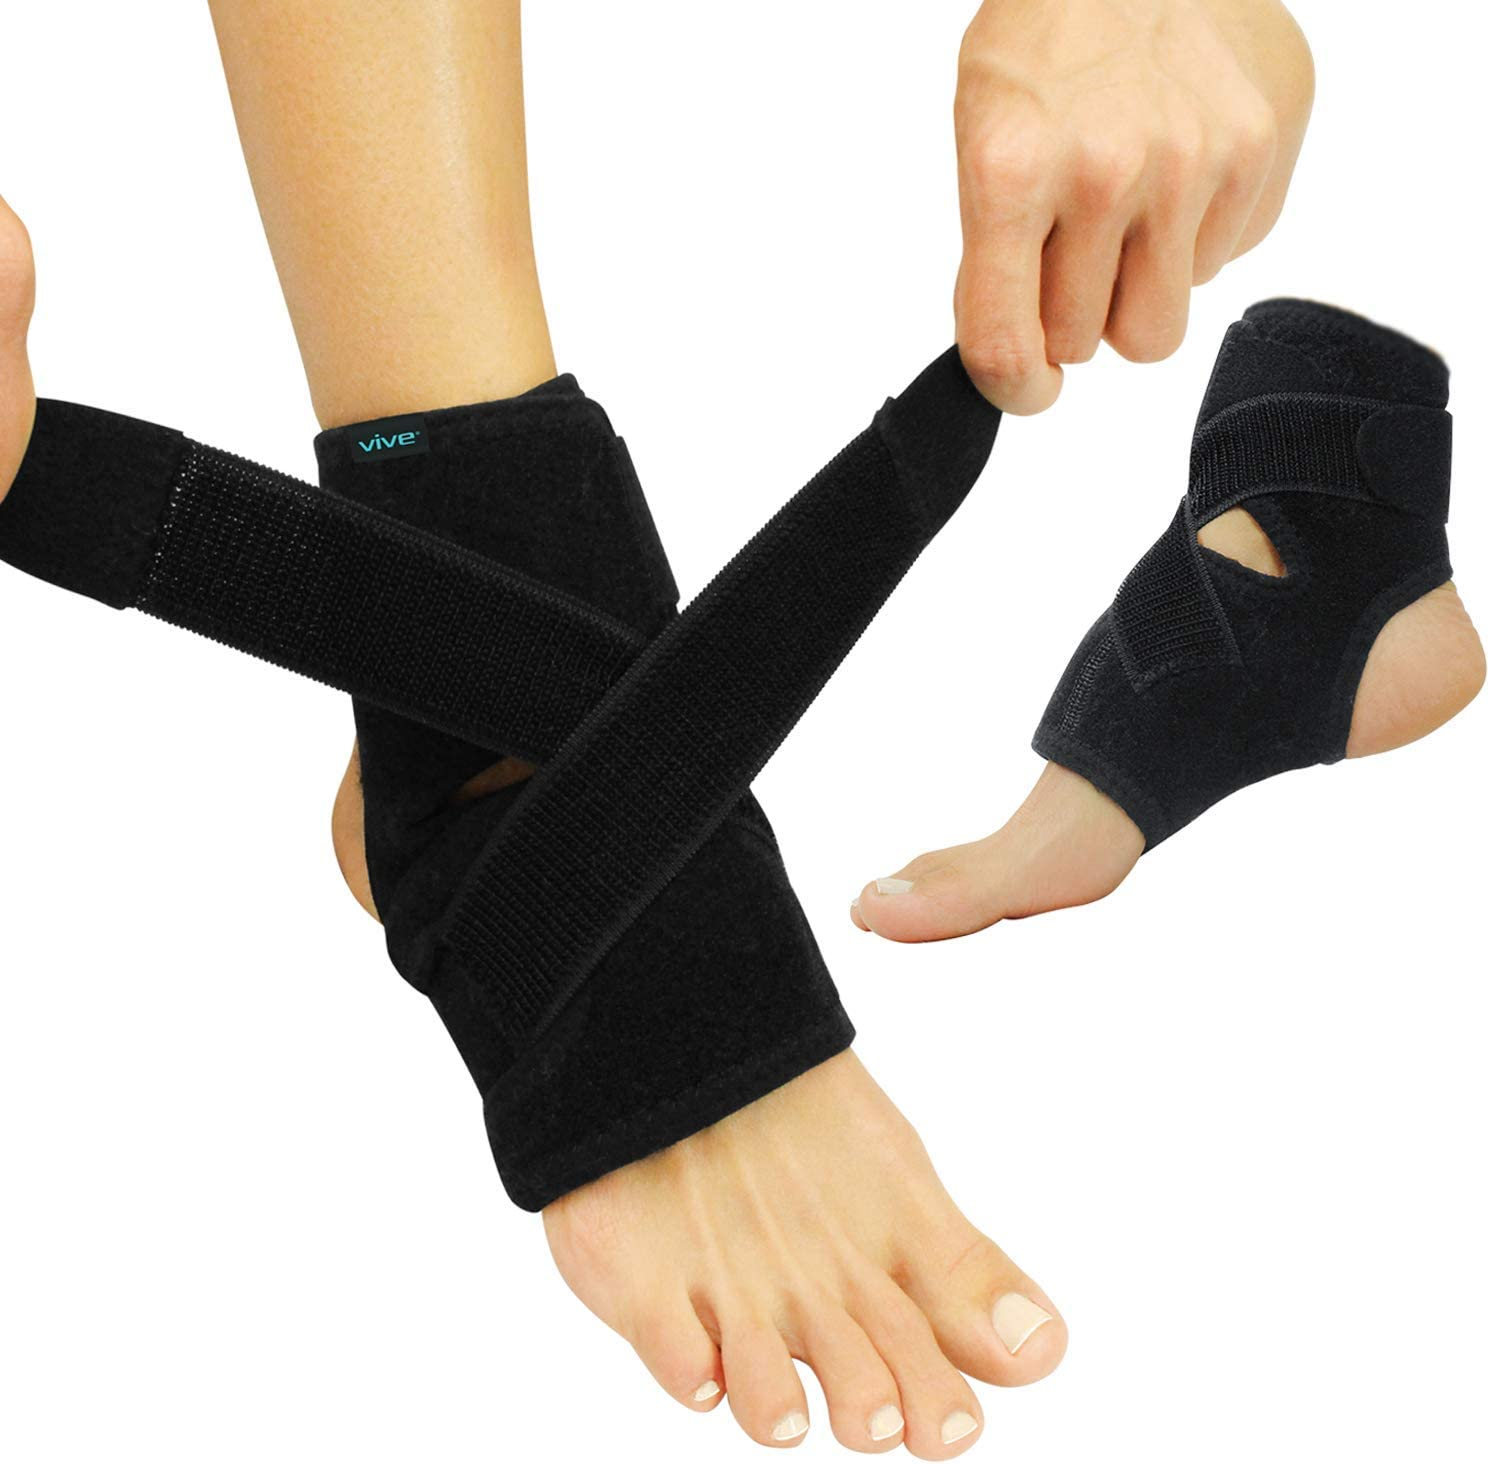 Vive Foot Ankle Wrap - Right and Left Foot Support Sleeve Brace for Men and Women - Adjustable Sprained Feet- Lightweight, Breathable Guard - Stabilizer for Running, Rolled Sprains, Swollen Tendonitis